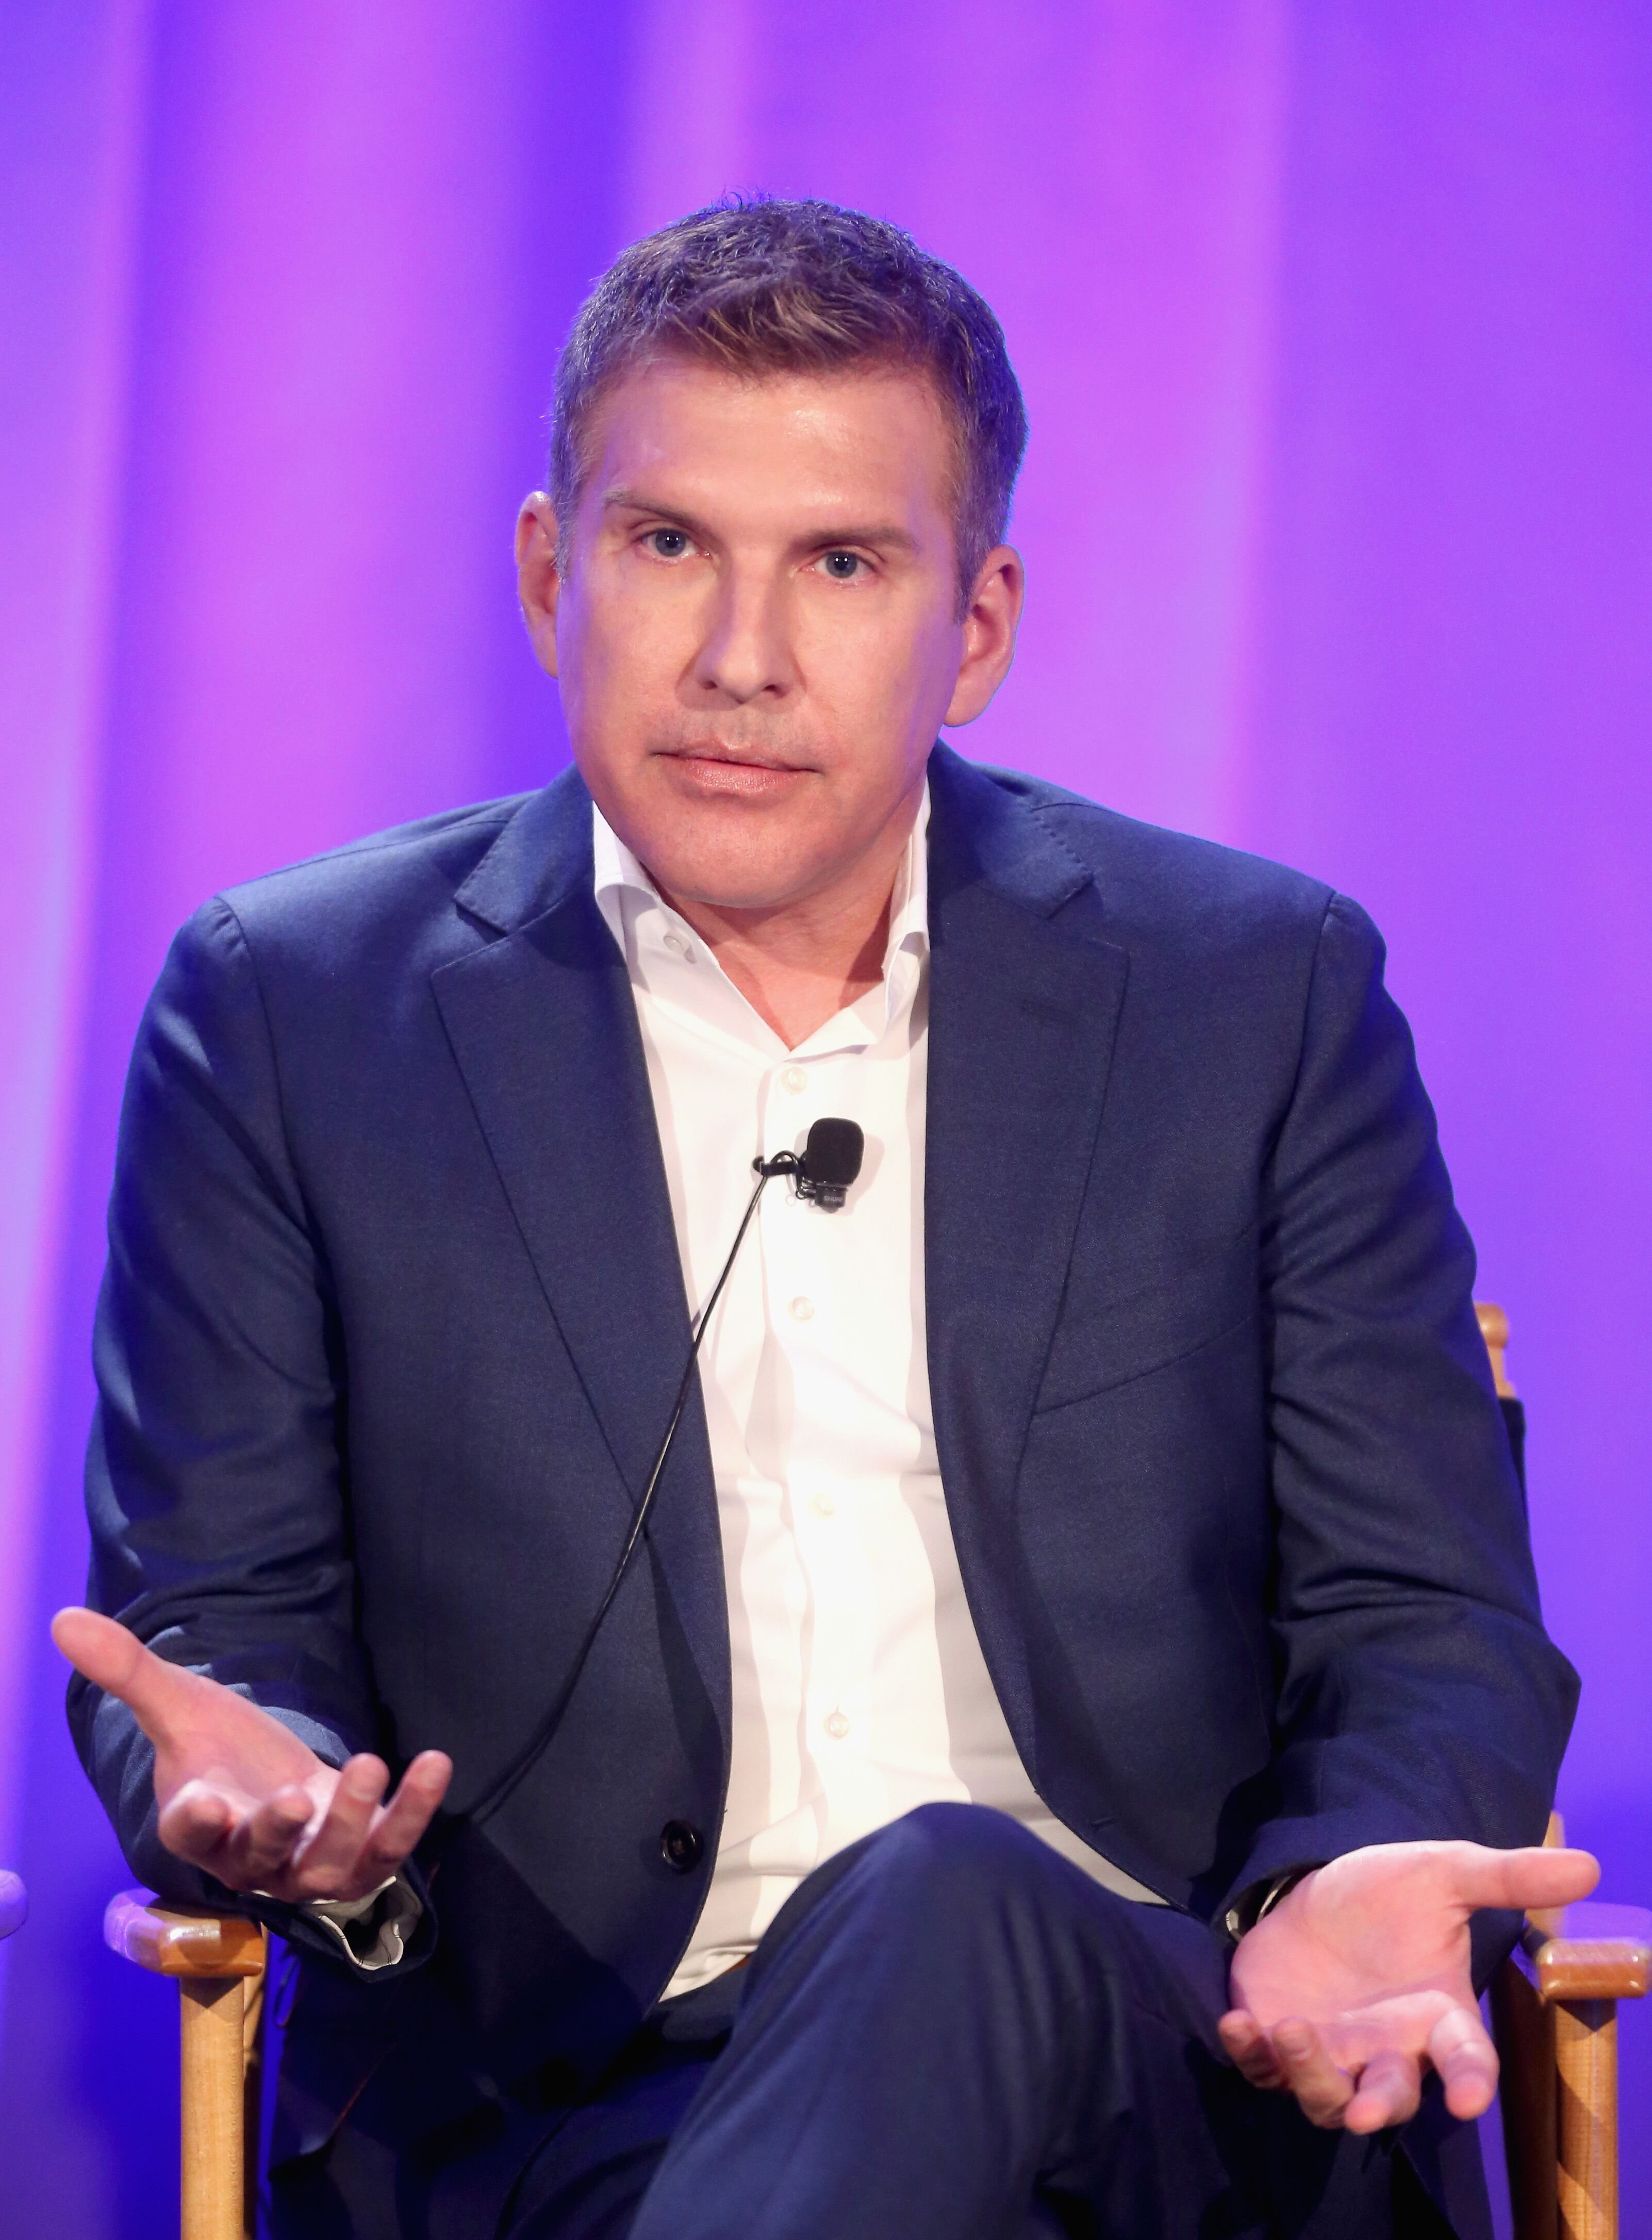 Todd Chrisley speaking before an audience | Source: Getty Images